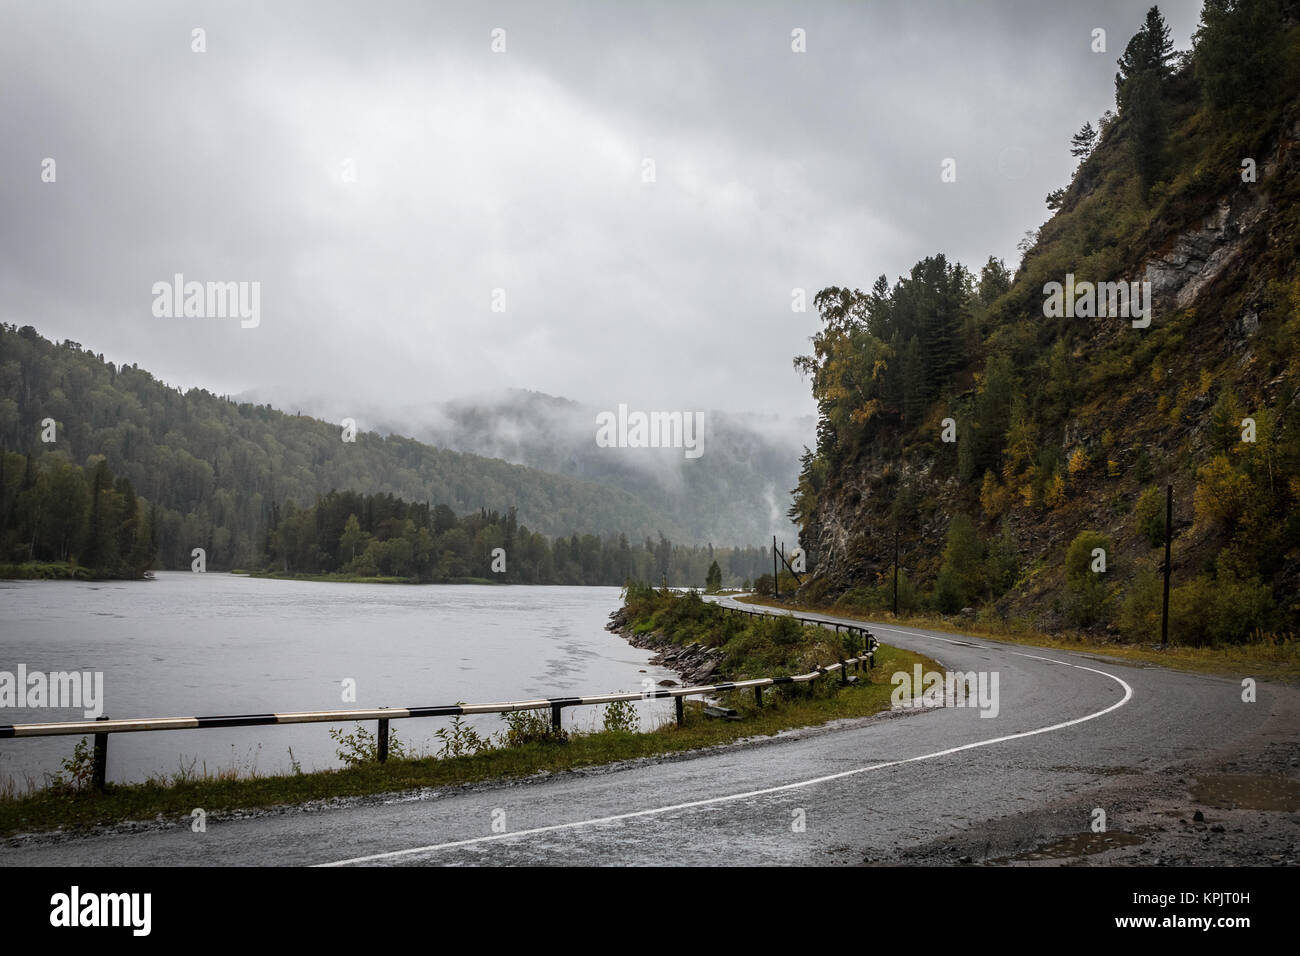 Road to new feelings - Stock Image